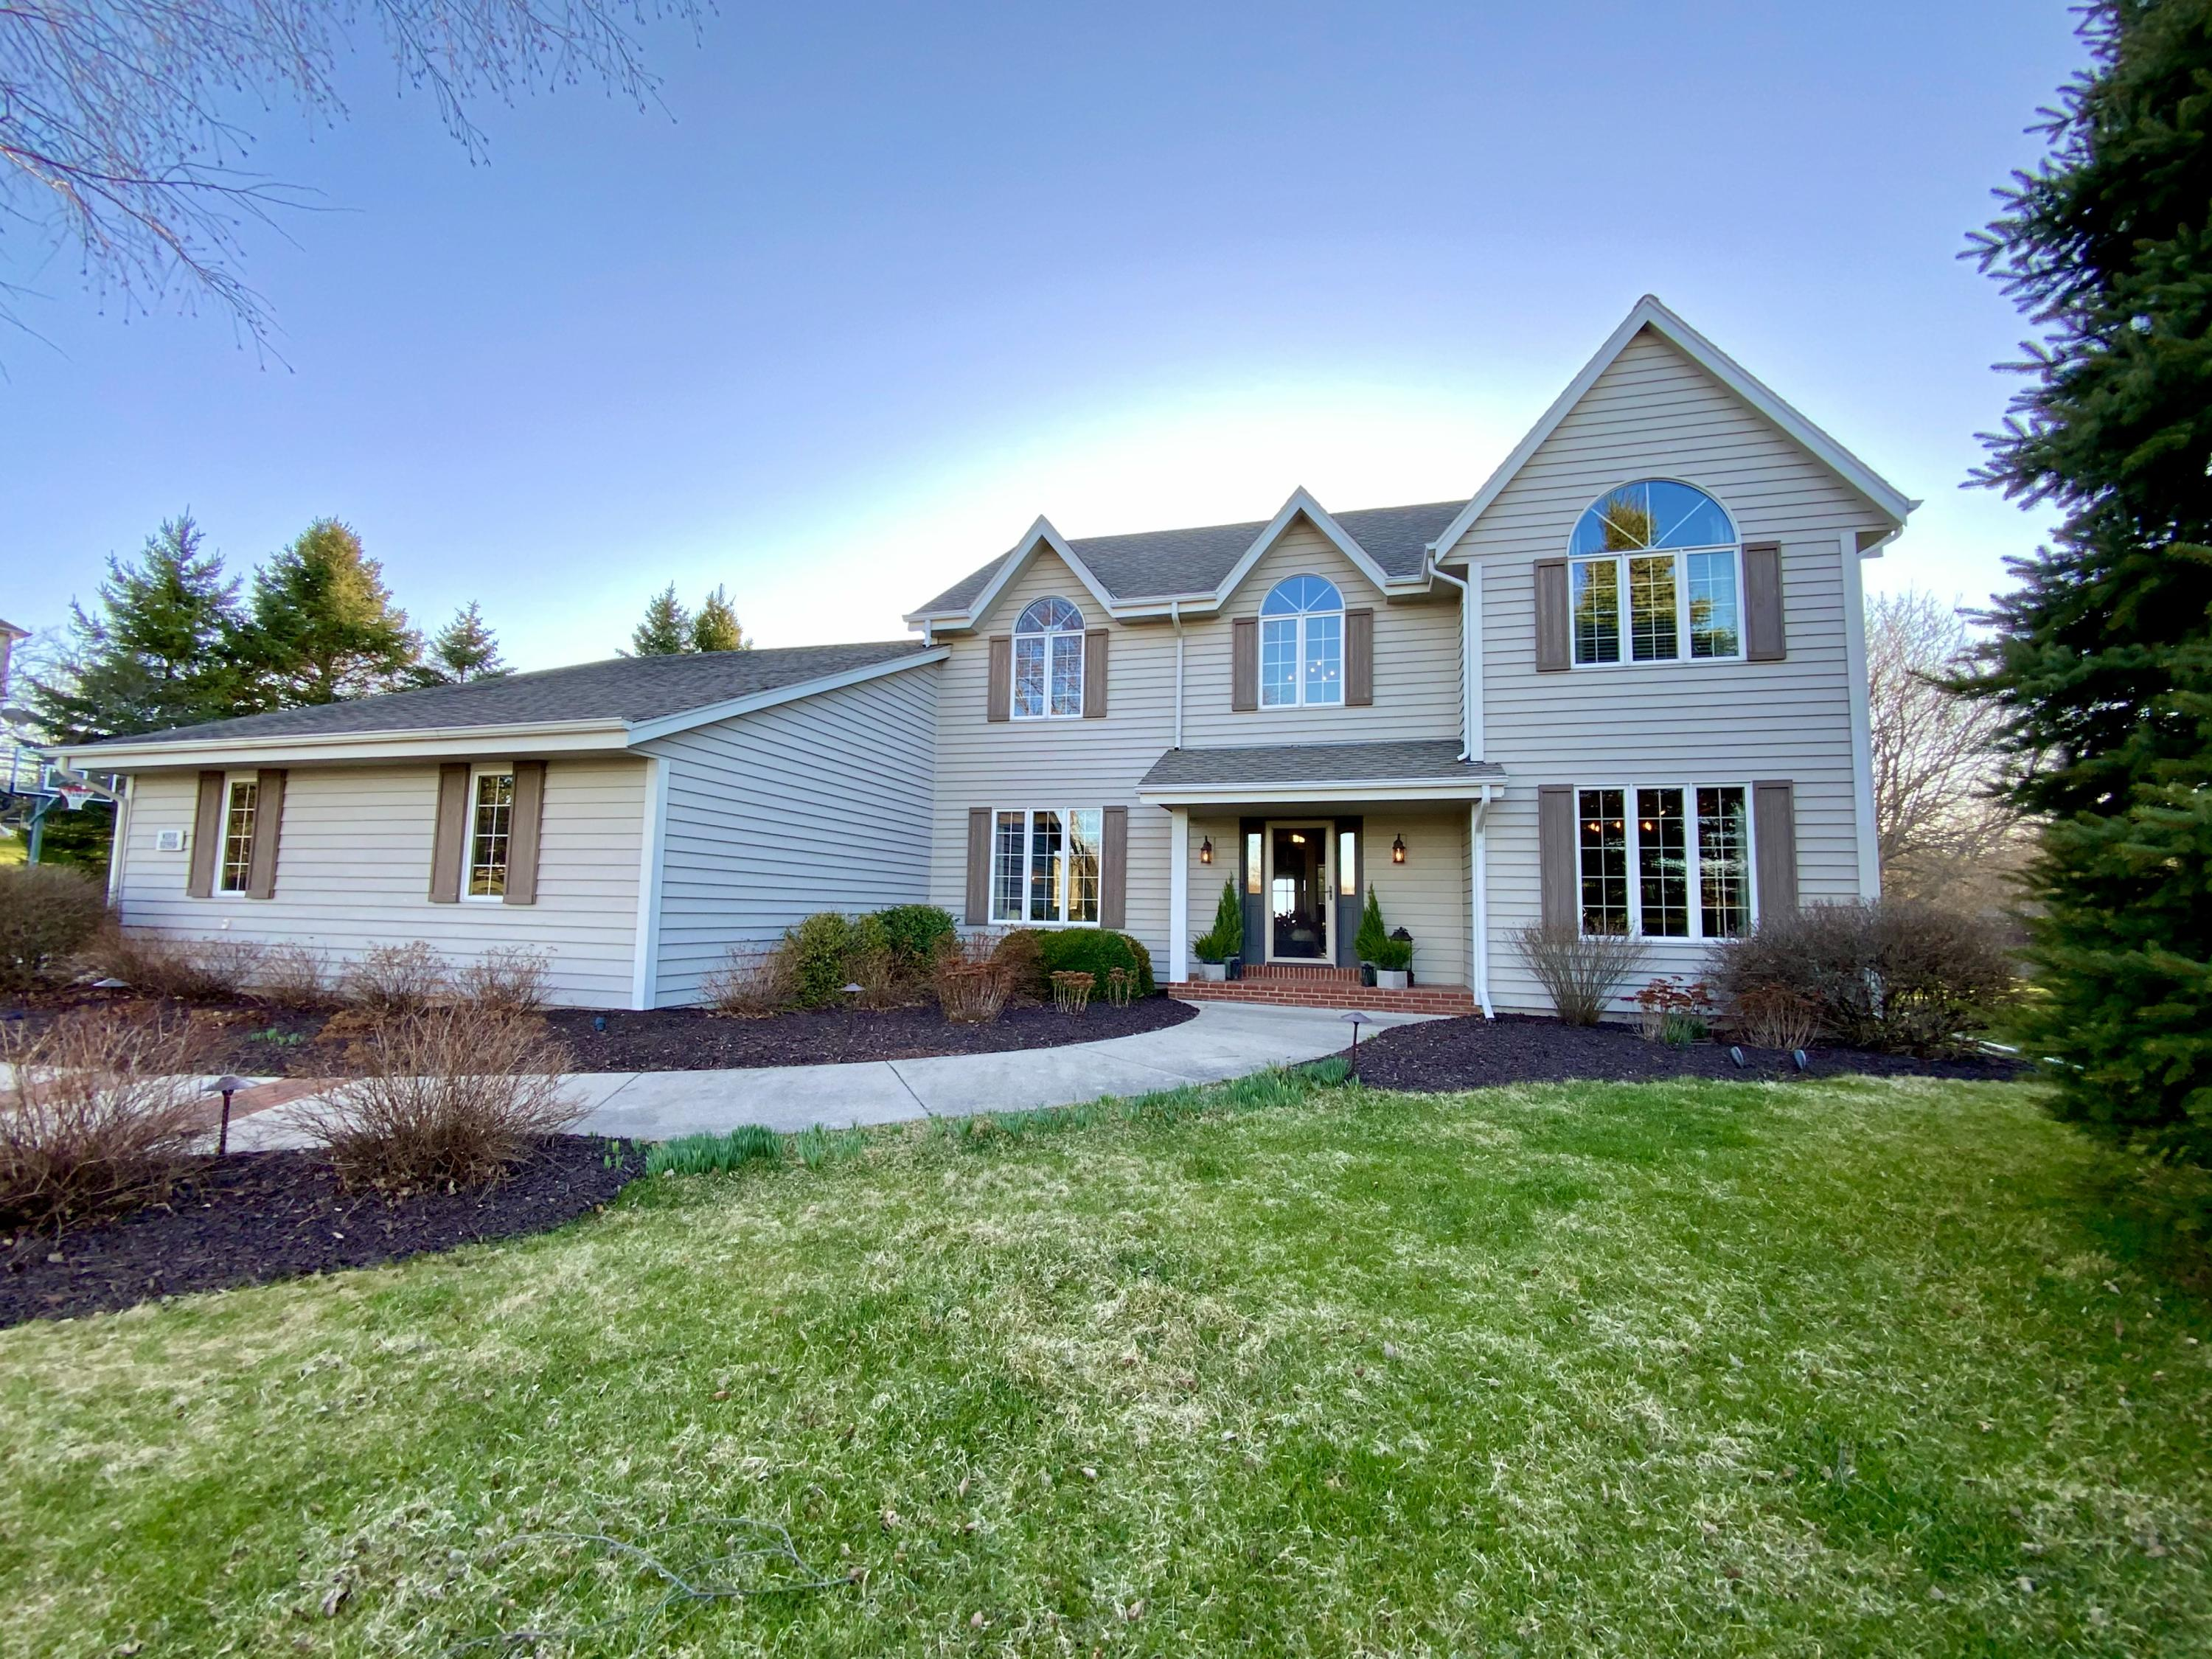 Photo of W295S2593 Jamie Ct, Waukesha, WI 53188